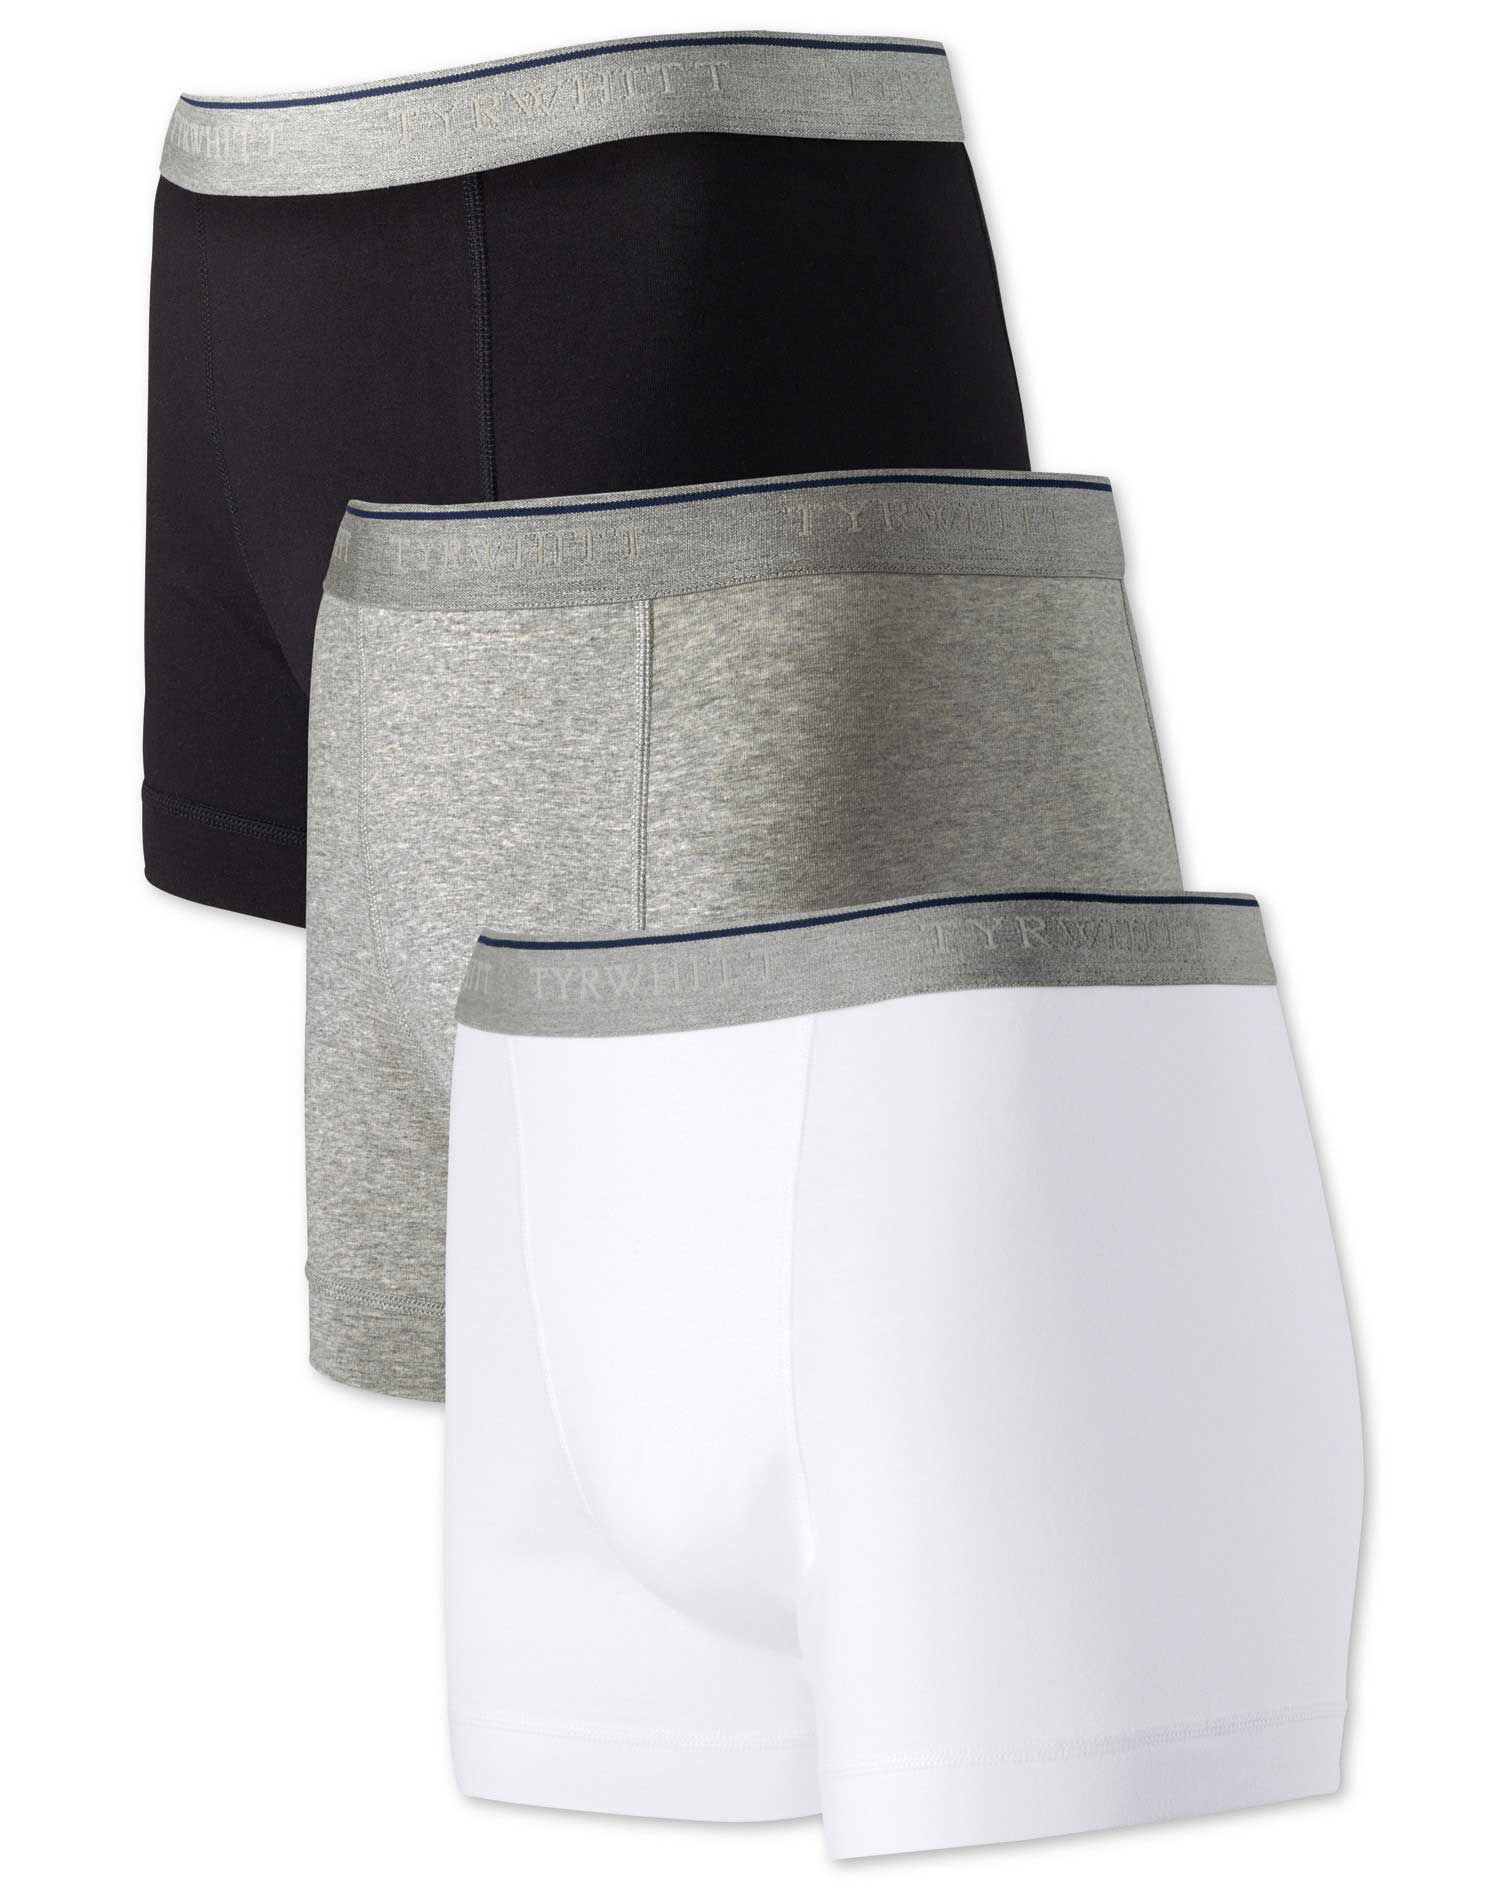 White Multi Jersey 3 Pack Trunks Size Large by Charles Tyrwhitt